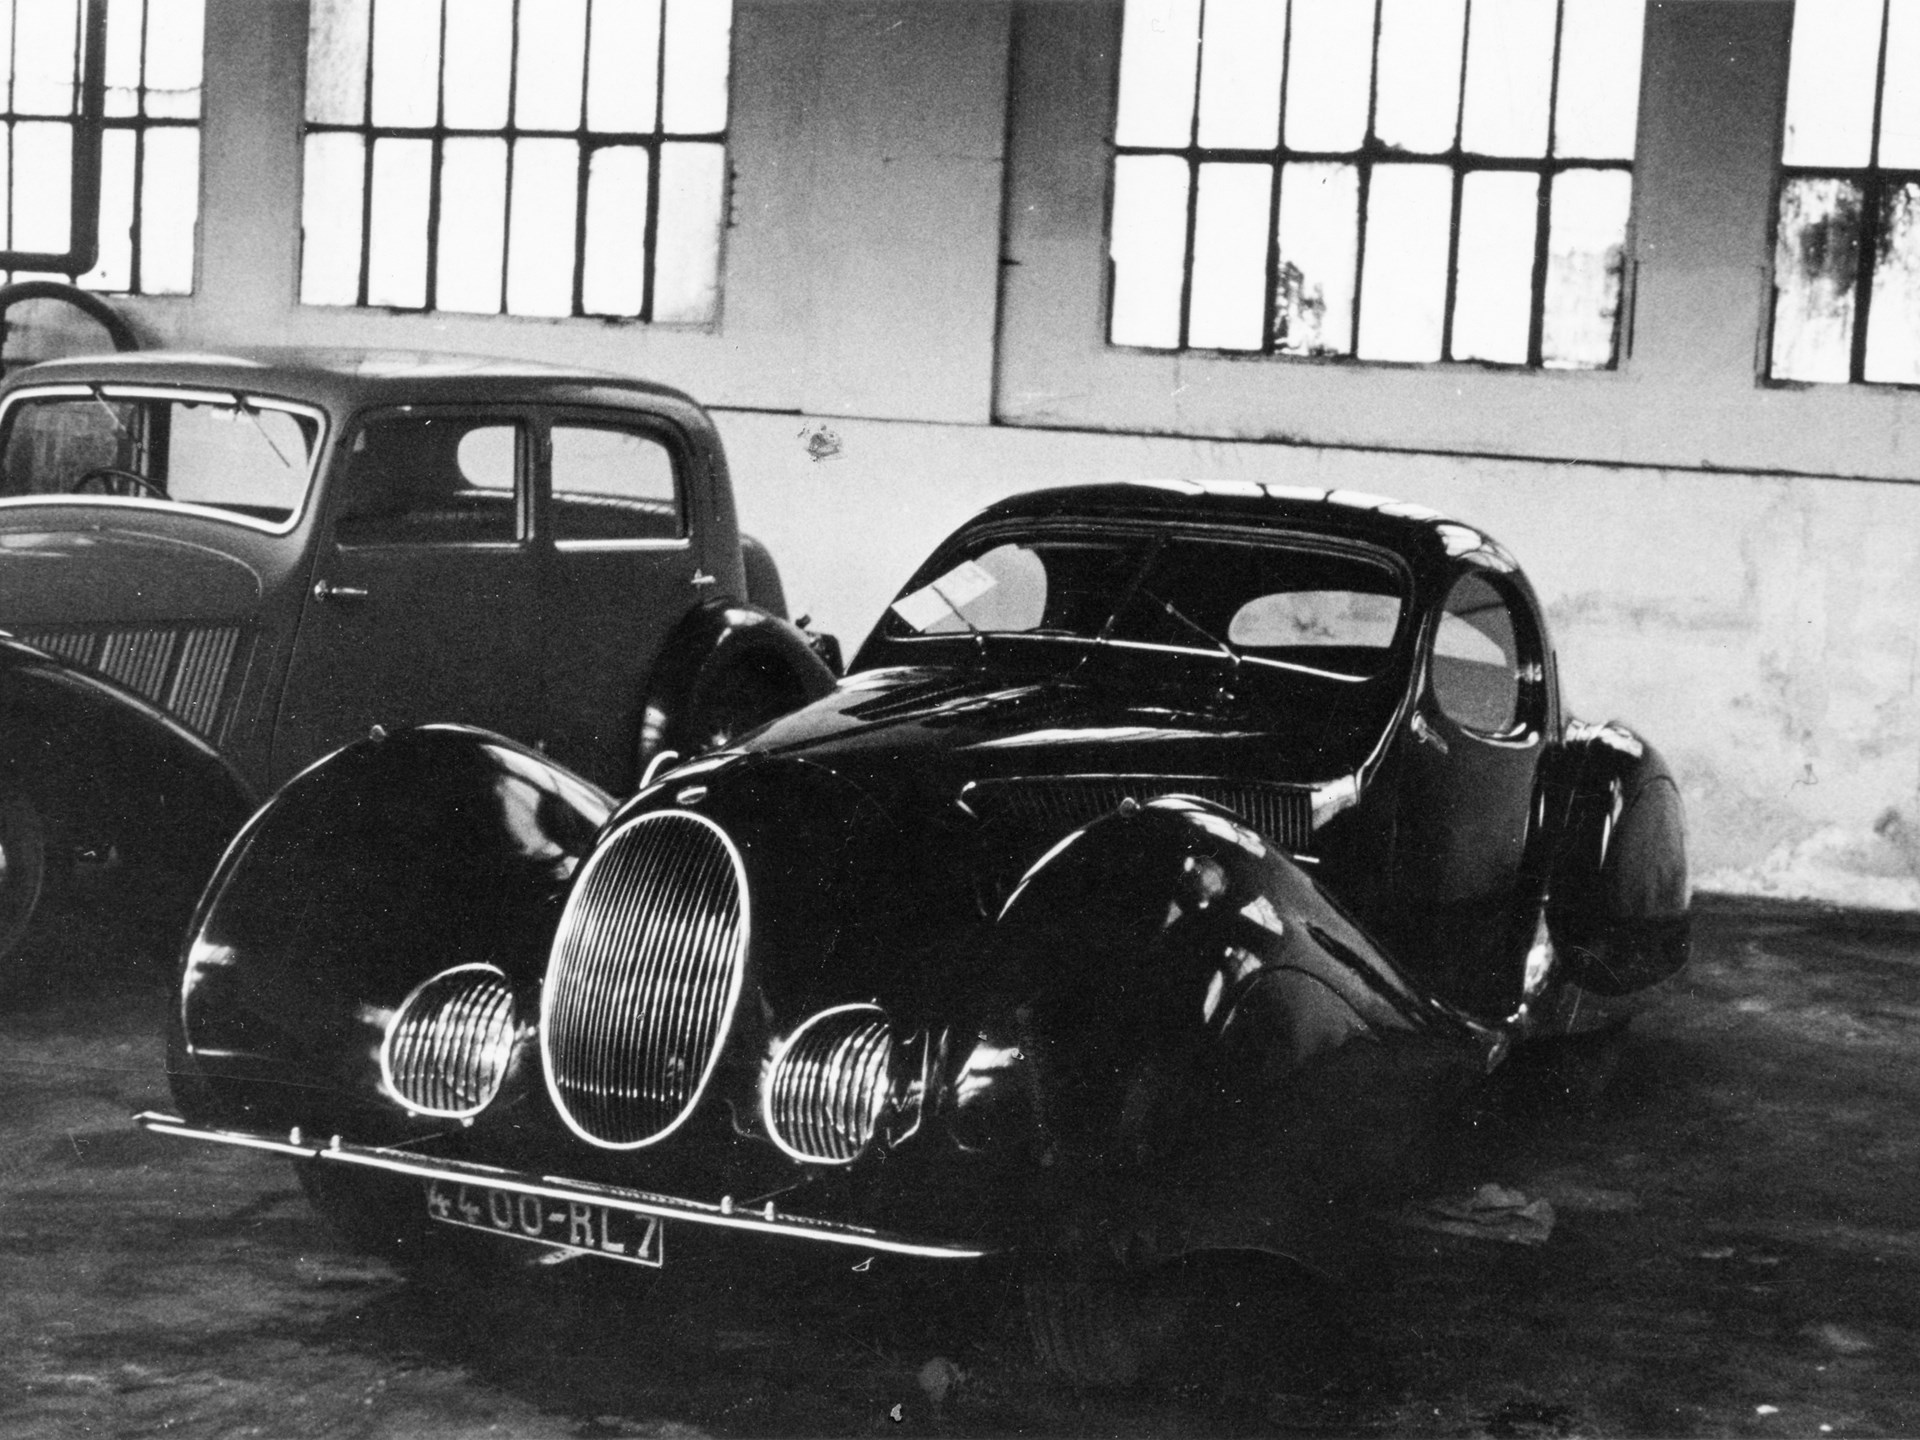 Chassis no. 90110 sitting inside the Talbot factory prior to World War II.